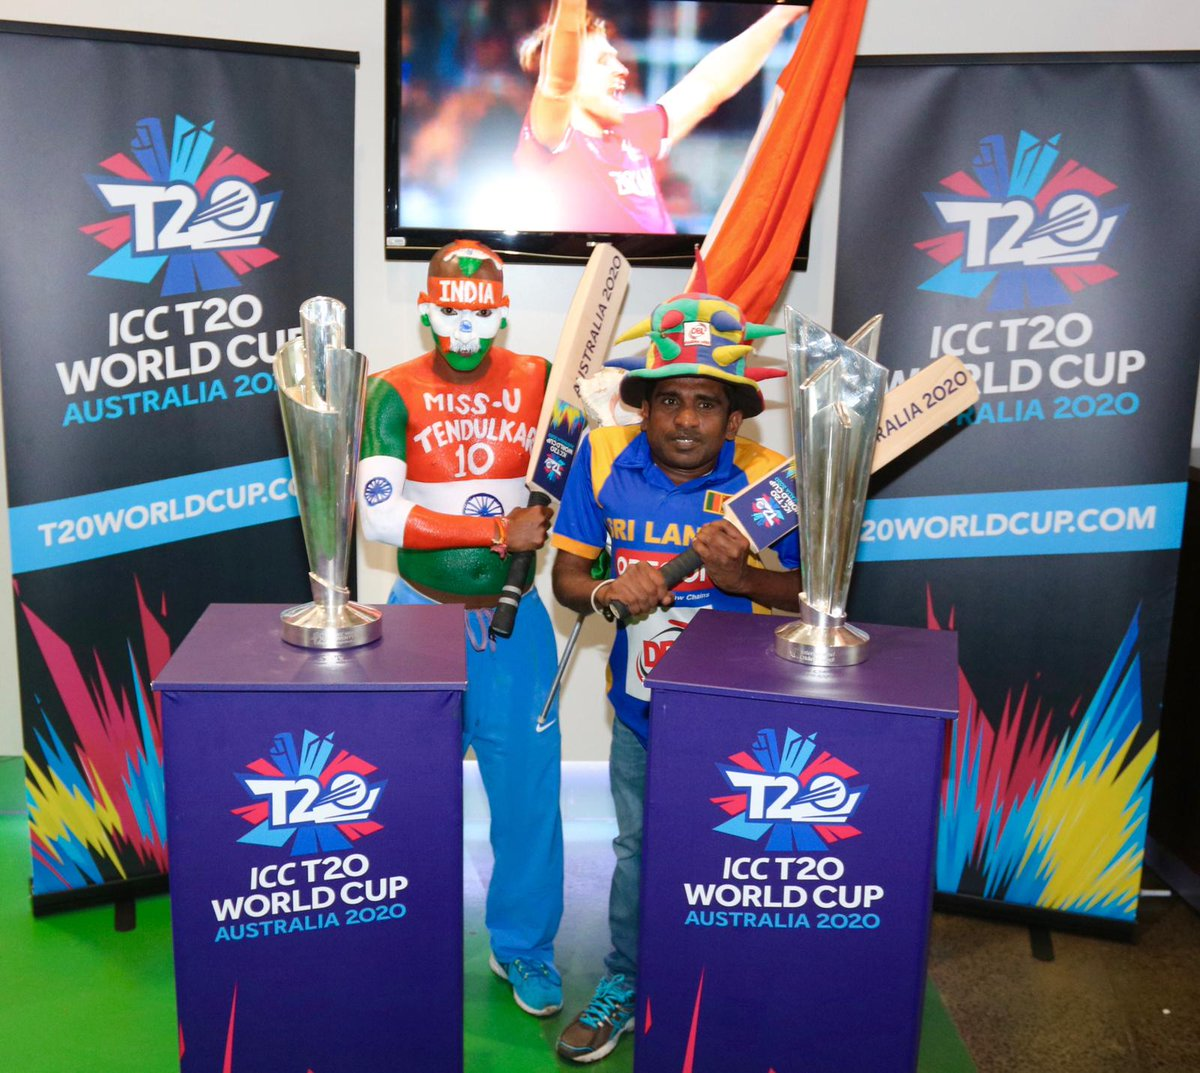 The #T20WorldCup will bring fans together from all over the world to Australia. Sri Lanka and India's number one fans came together today at the @MCG and will be there again in 2020!